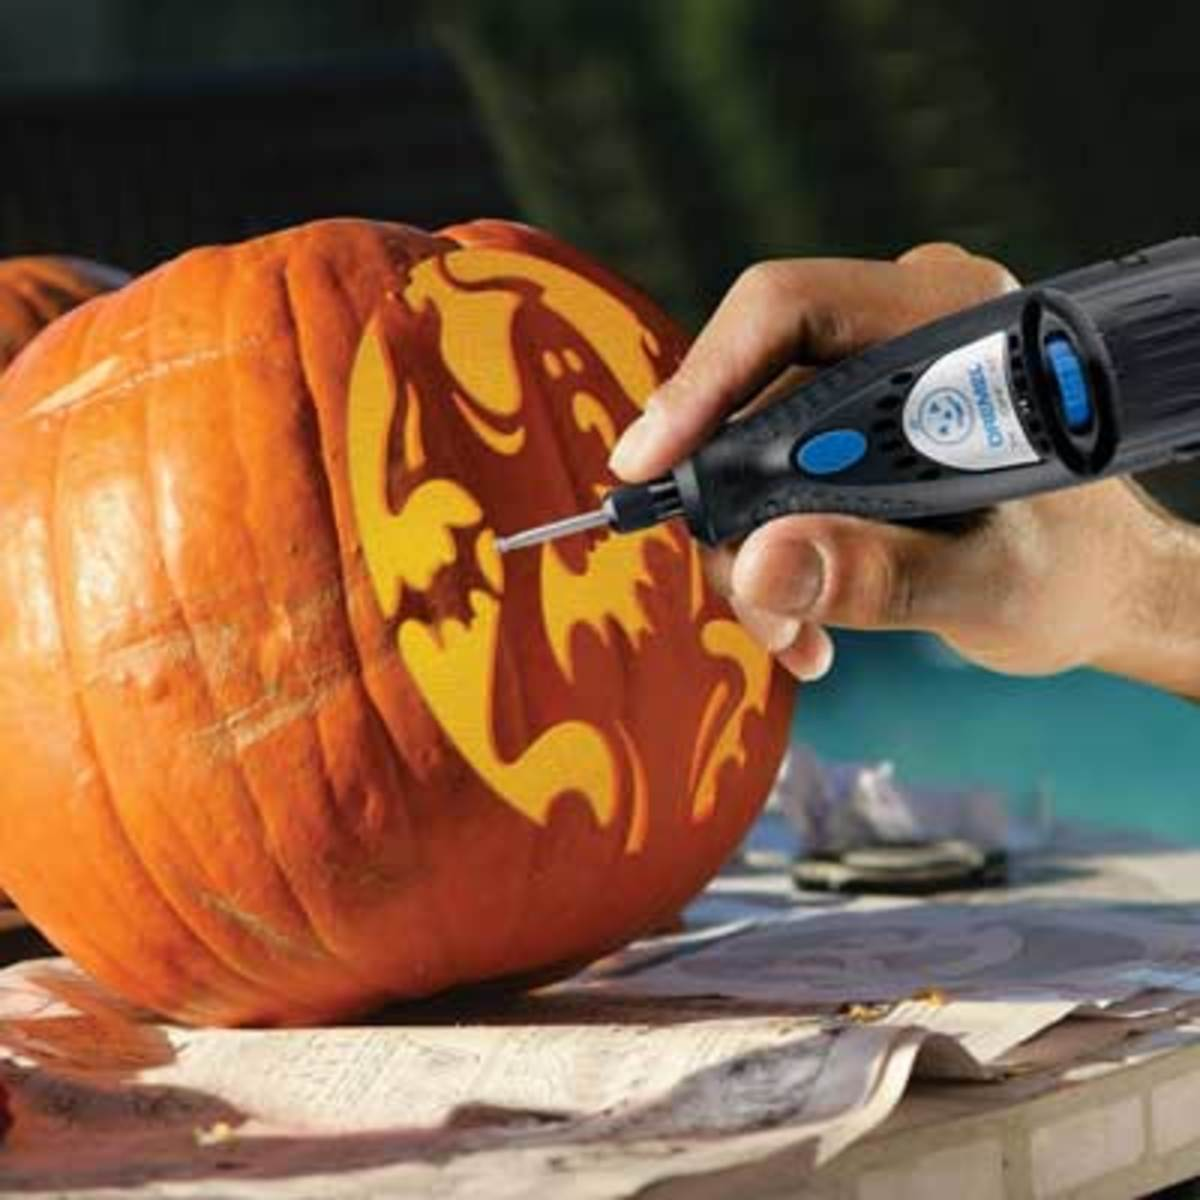 The Best Pumpkin Carving Tools to use for Carving Pumpkins